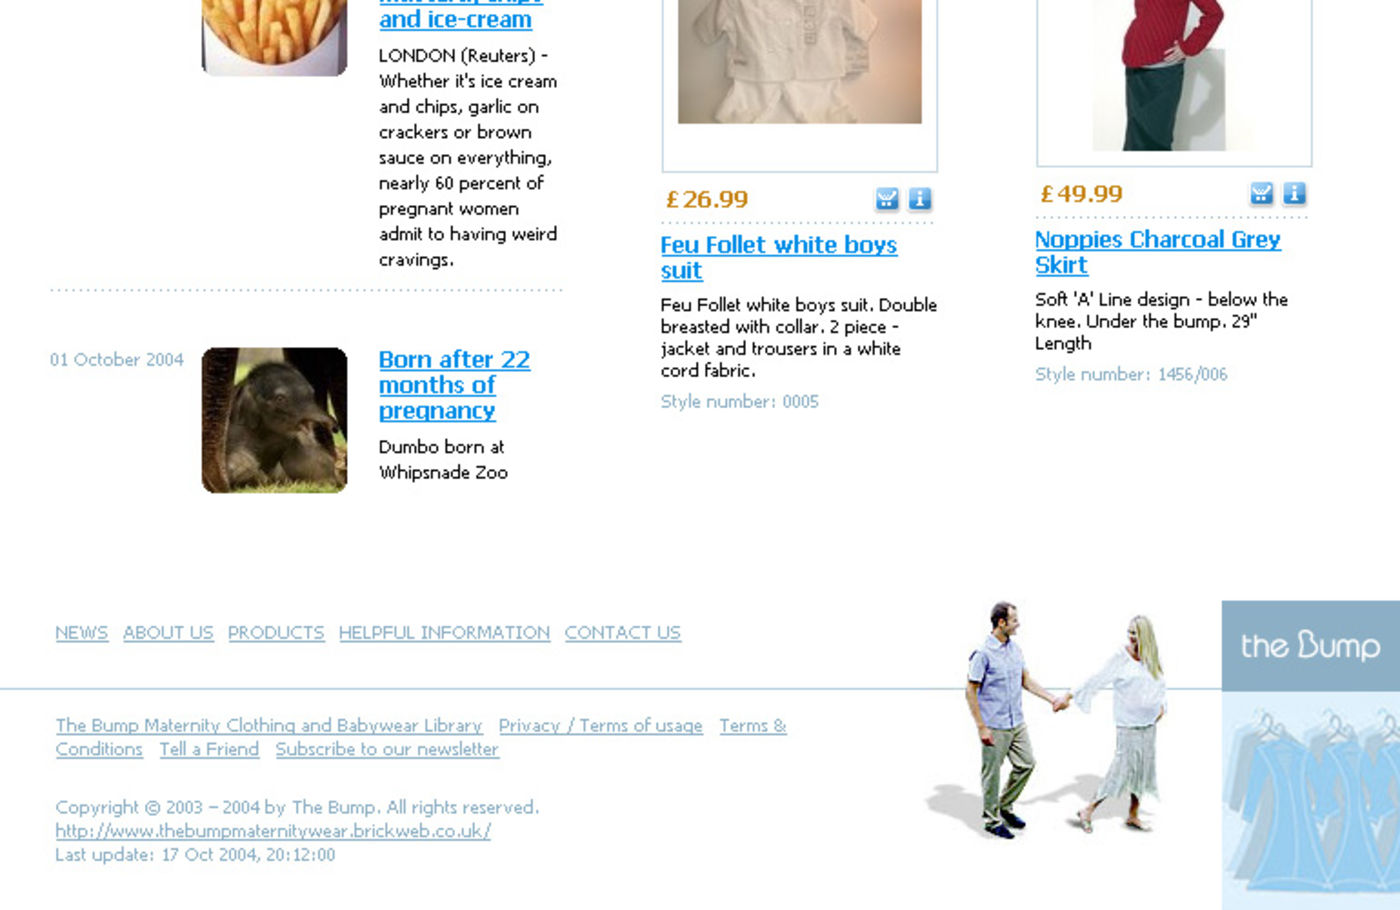 The Bump Maternity Clothing & Babywear Homepage footer